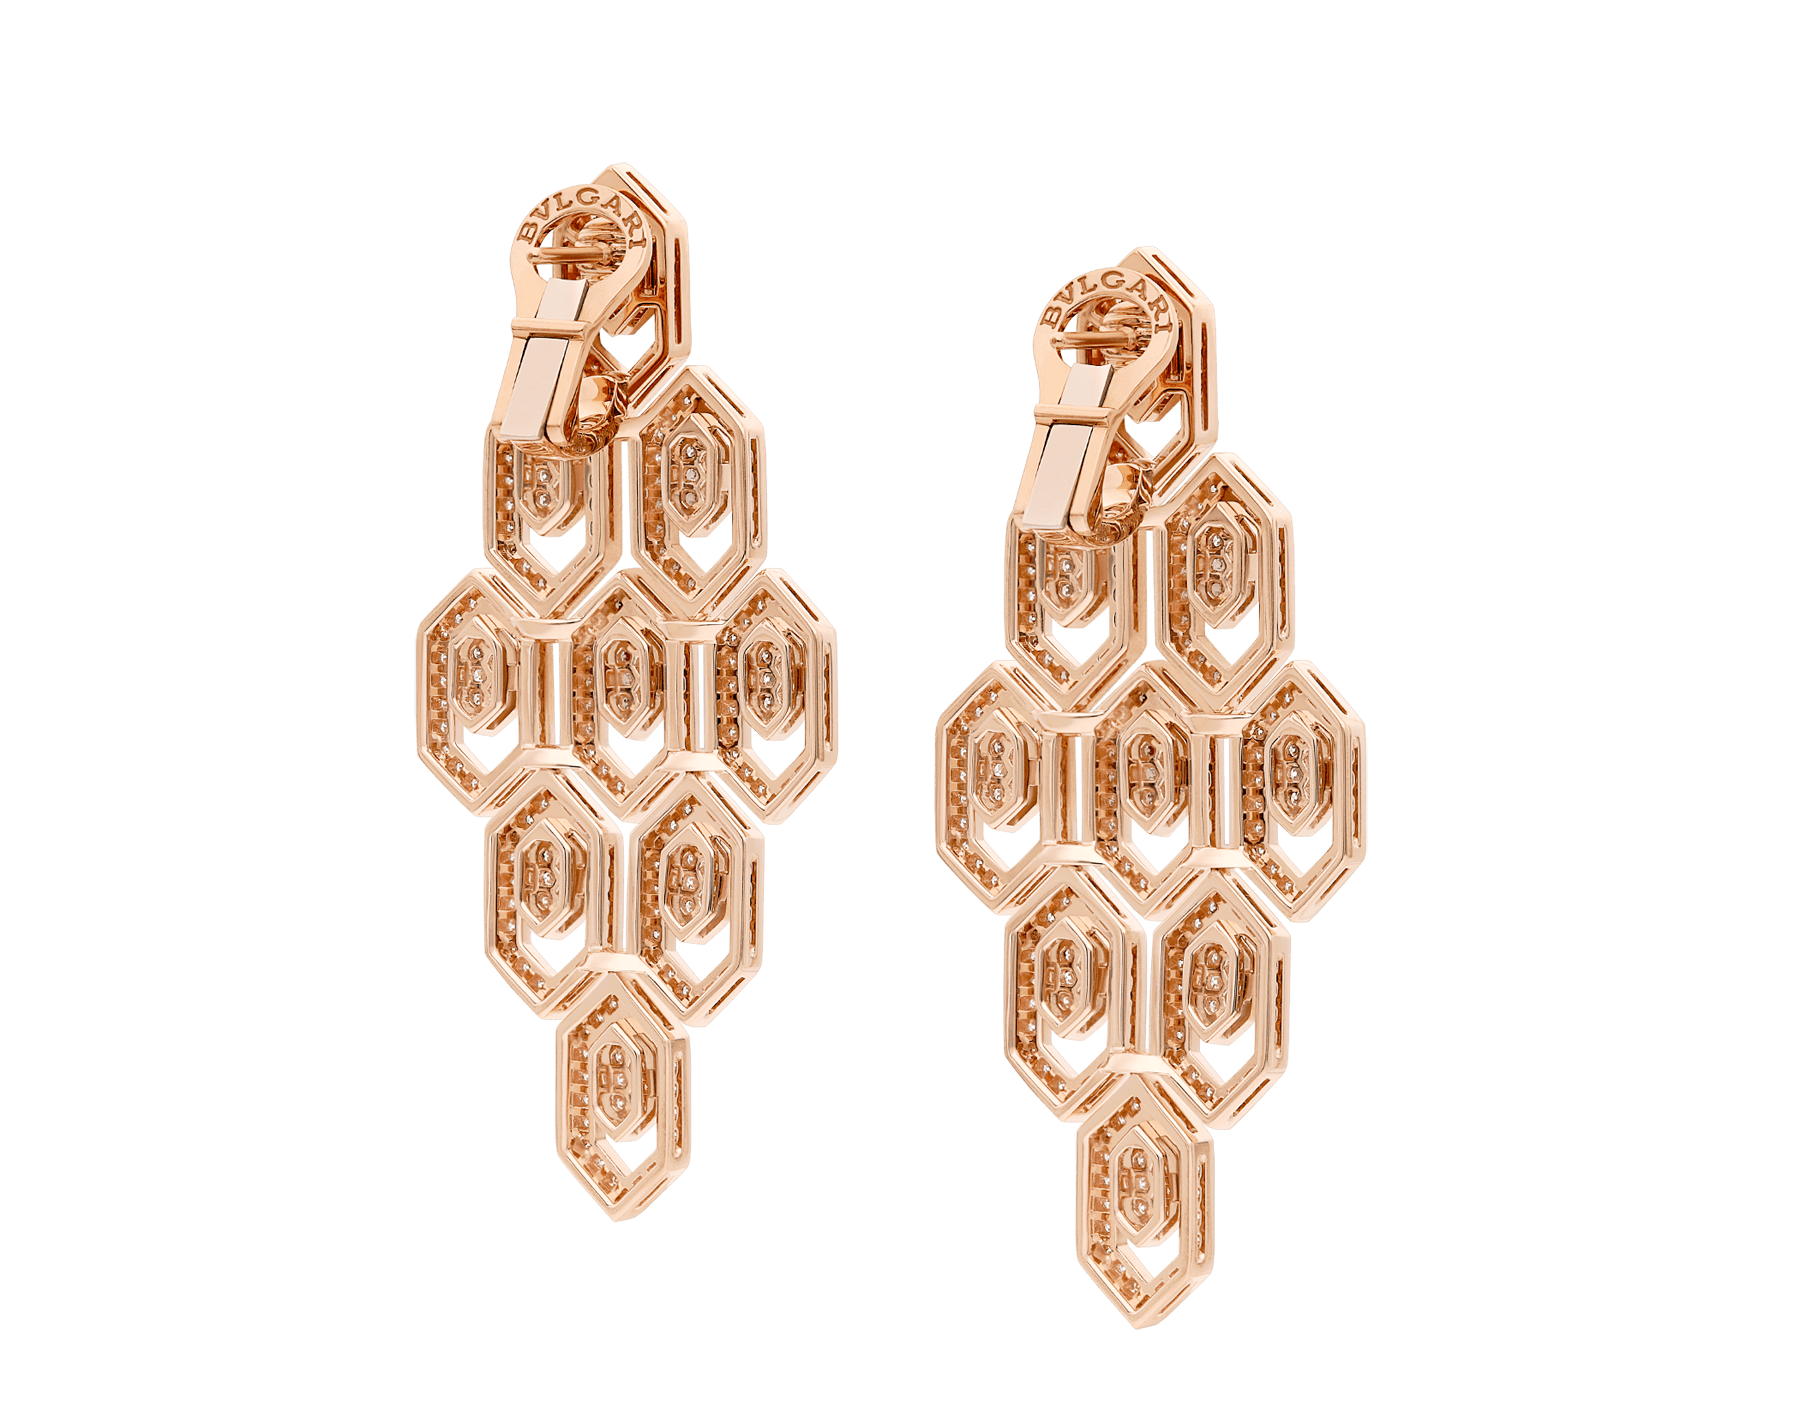 Serpenti 18 kt rose gold earrings set with pavé diamonds (2.18 ct) 356507 image 3